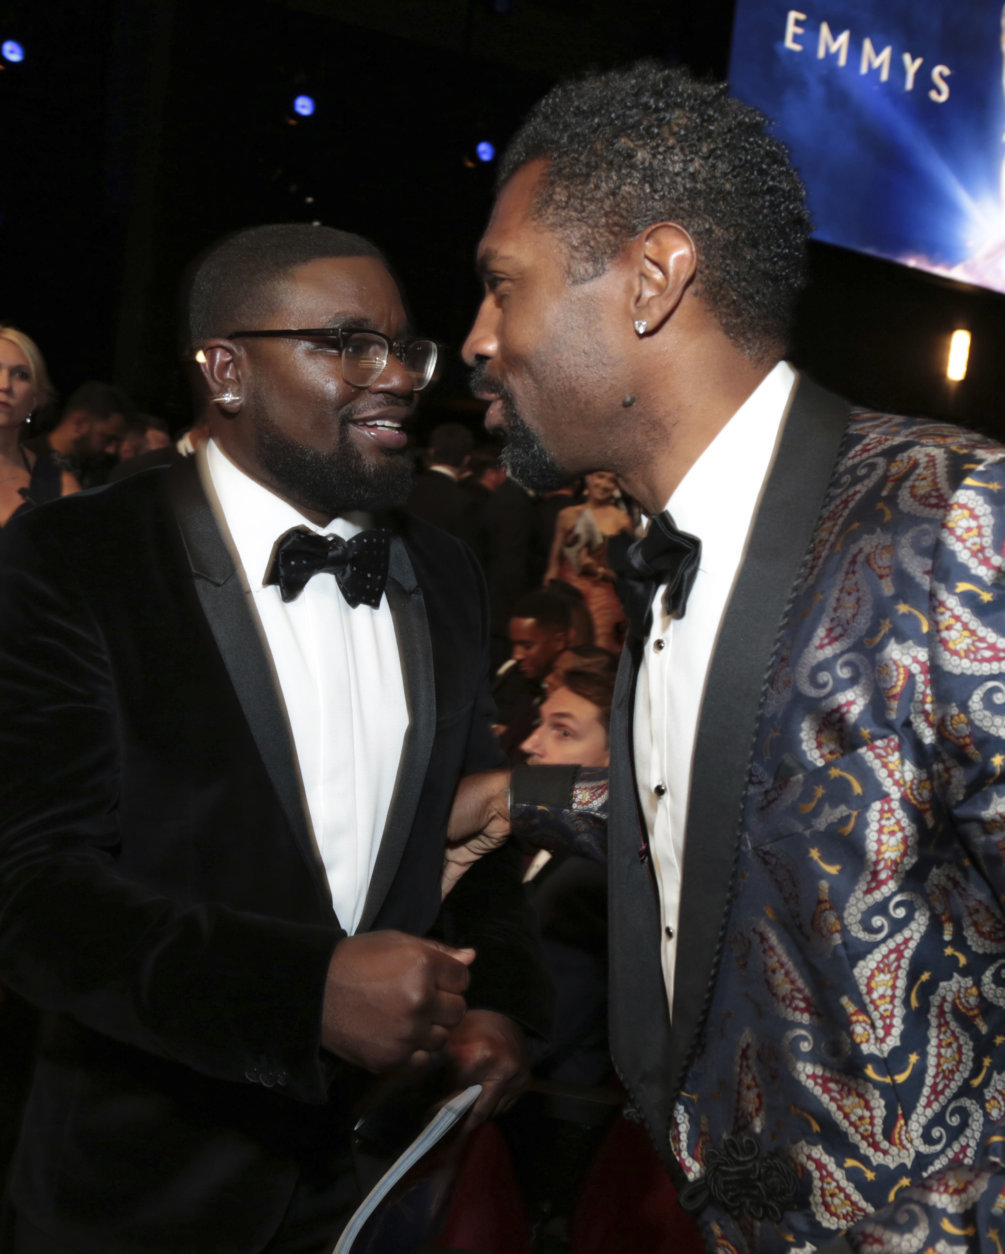 IMAGE DISTRIBUTED FOR THE TELEVISION ACADEMY - Lil Rel Howery and Deon Cole at the 70th Primetime Emmy Awards on Monday, Sept. 17, 2018, at the Microsoft Theater in Los Angeles. (Photo by Alex Berliner/Invision for the Television Academy/AP Images)